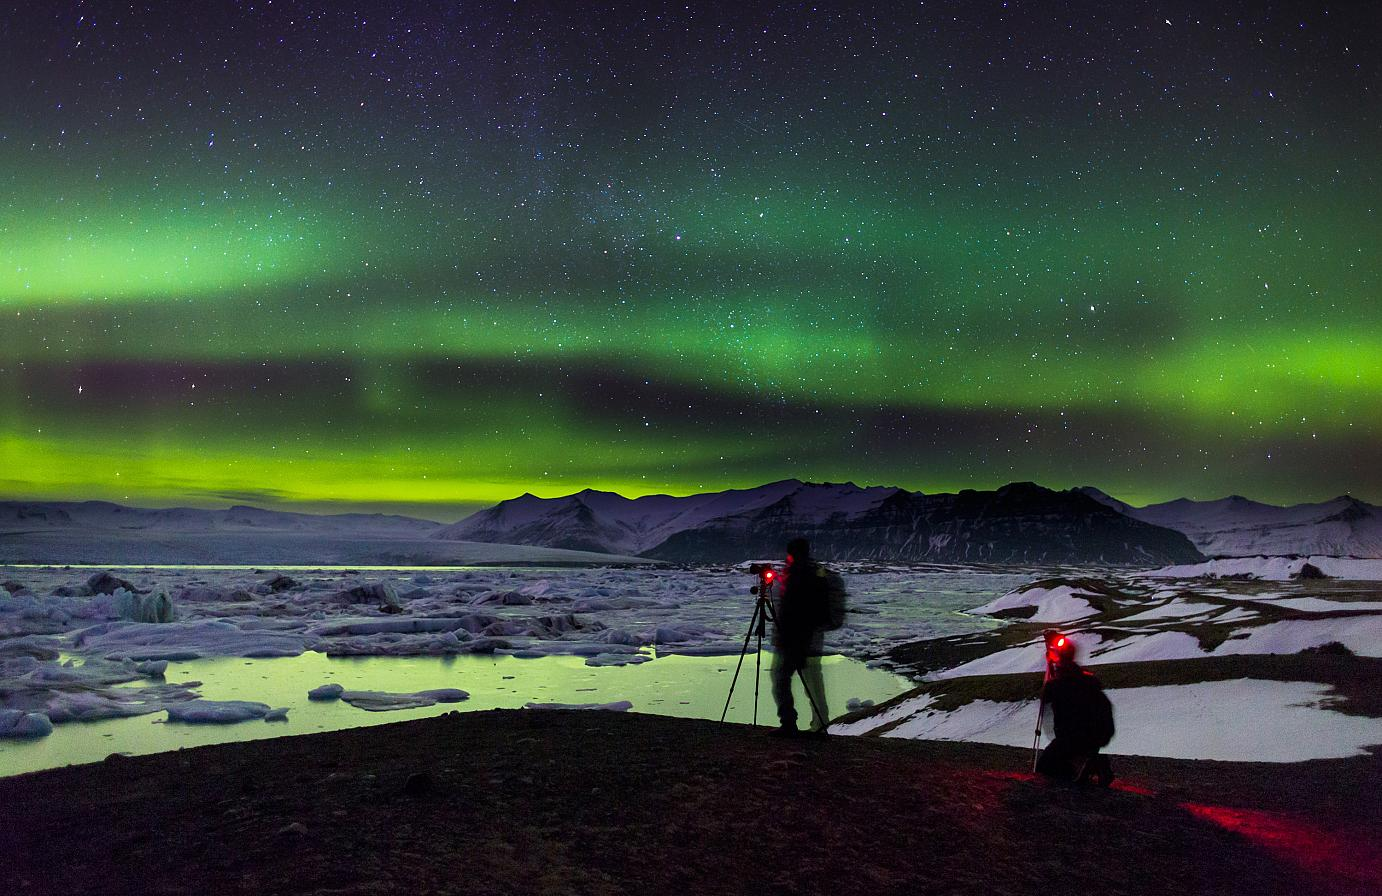 Camera lights glowing at the Jökulsarlon glacier in Iceland.